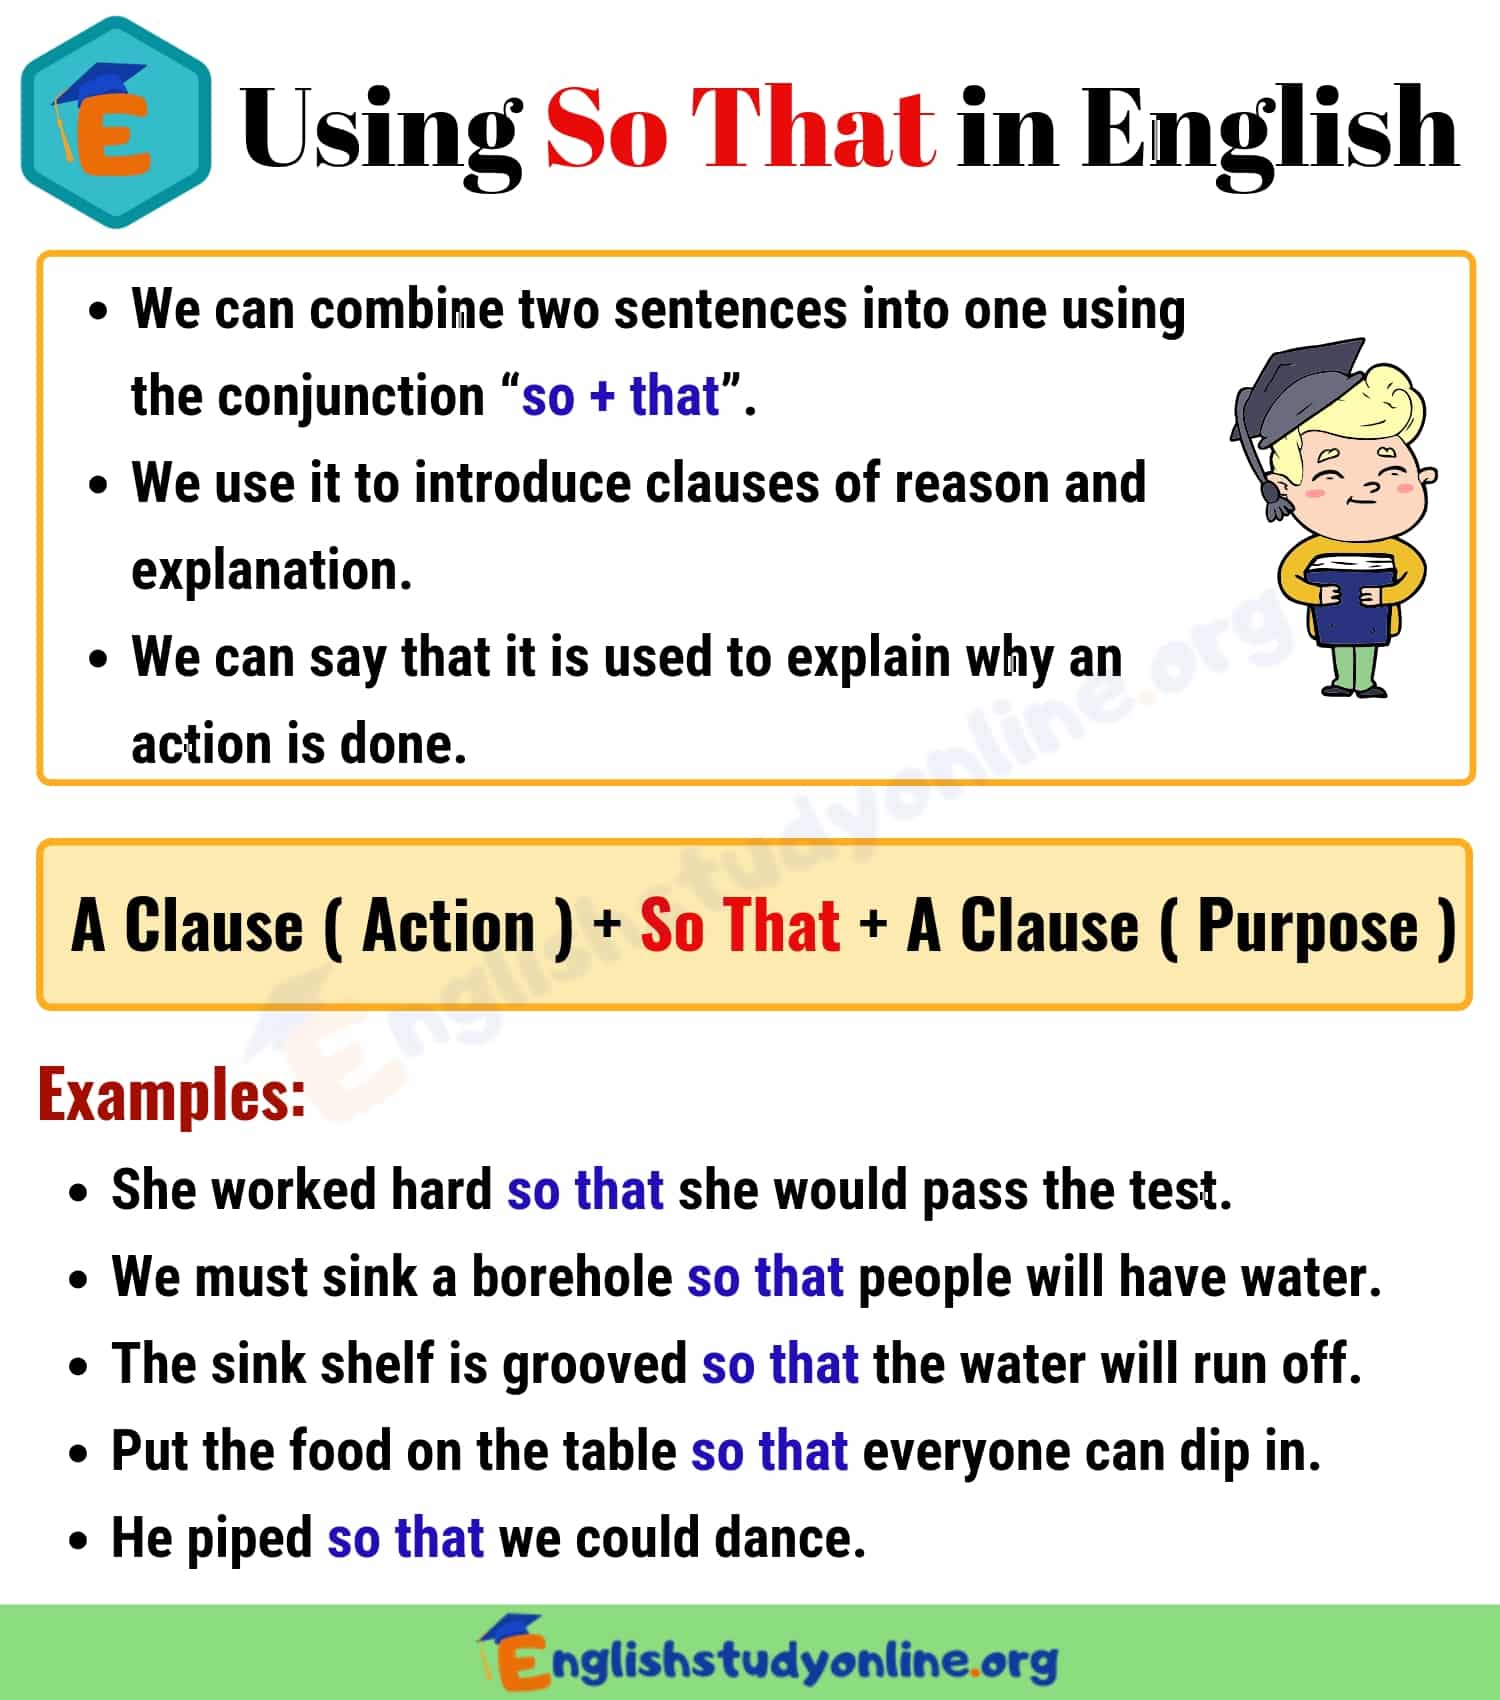 How To Use So That In English